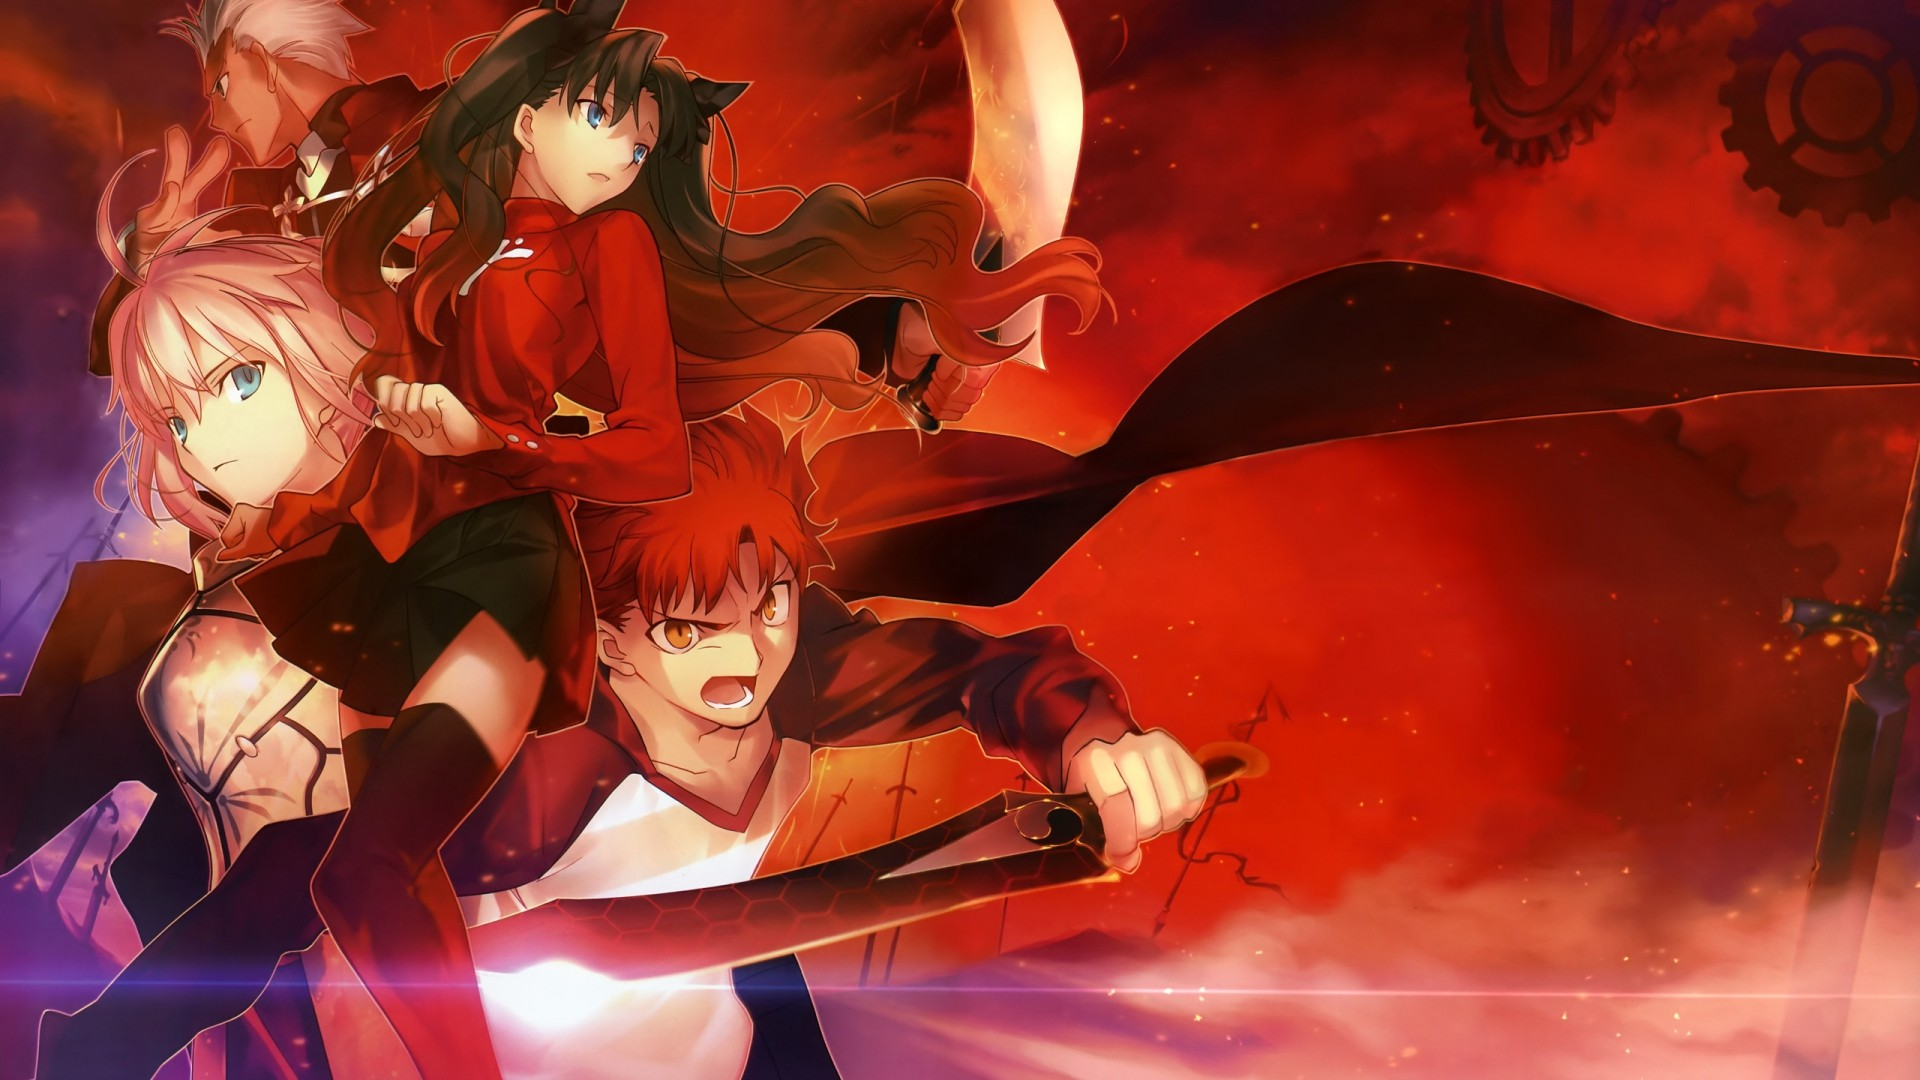 1920x1080  Wallpaper fate stay night, anime, warrior, space, background